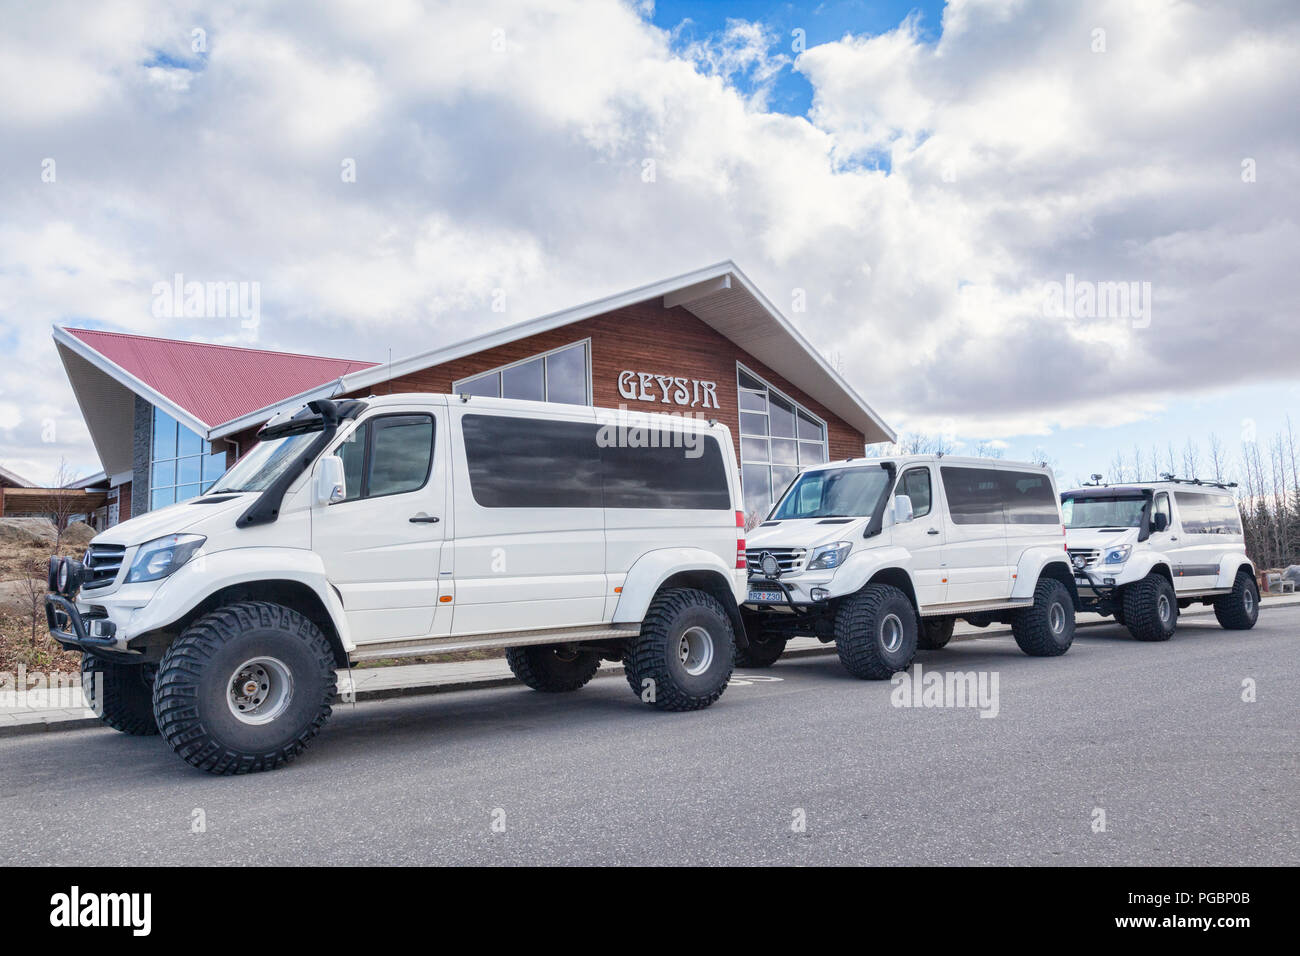 20 April 2018: Geysir, Iceland - Three large off road vehicles lined up at Geysir. - Stock Image